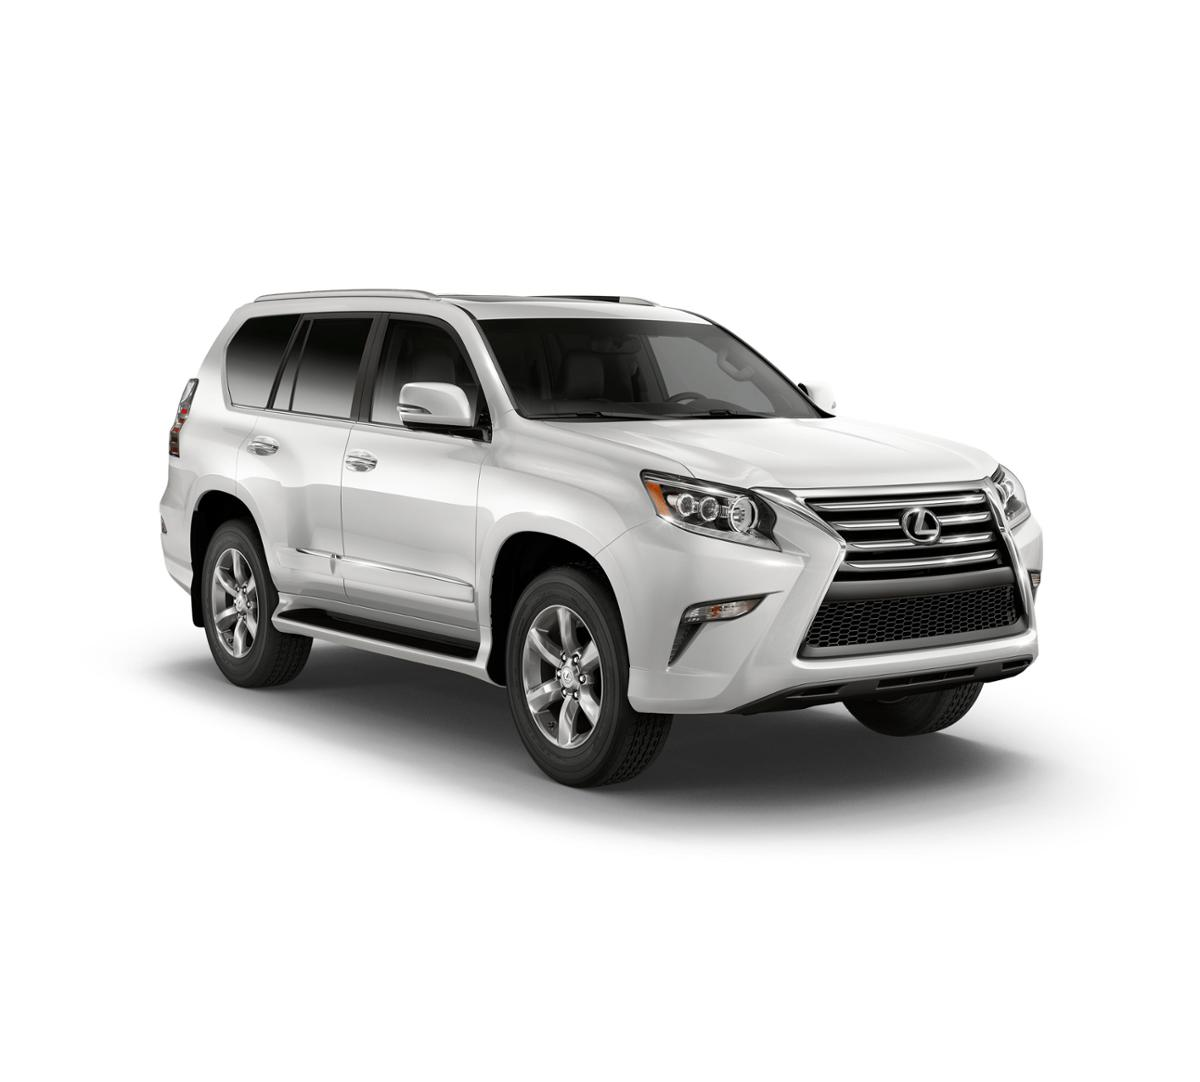 2019 Lexus GX 460 Vehicle Photo in Danvers, MA 01923